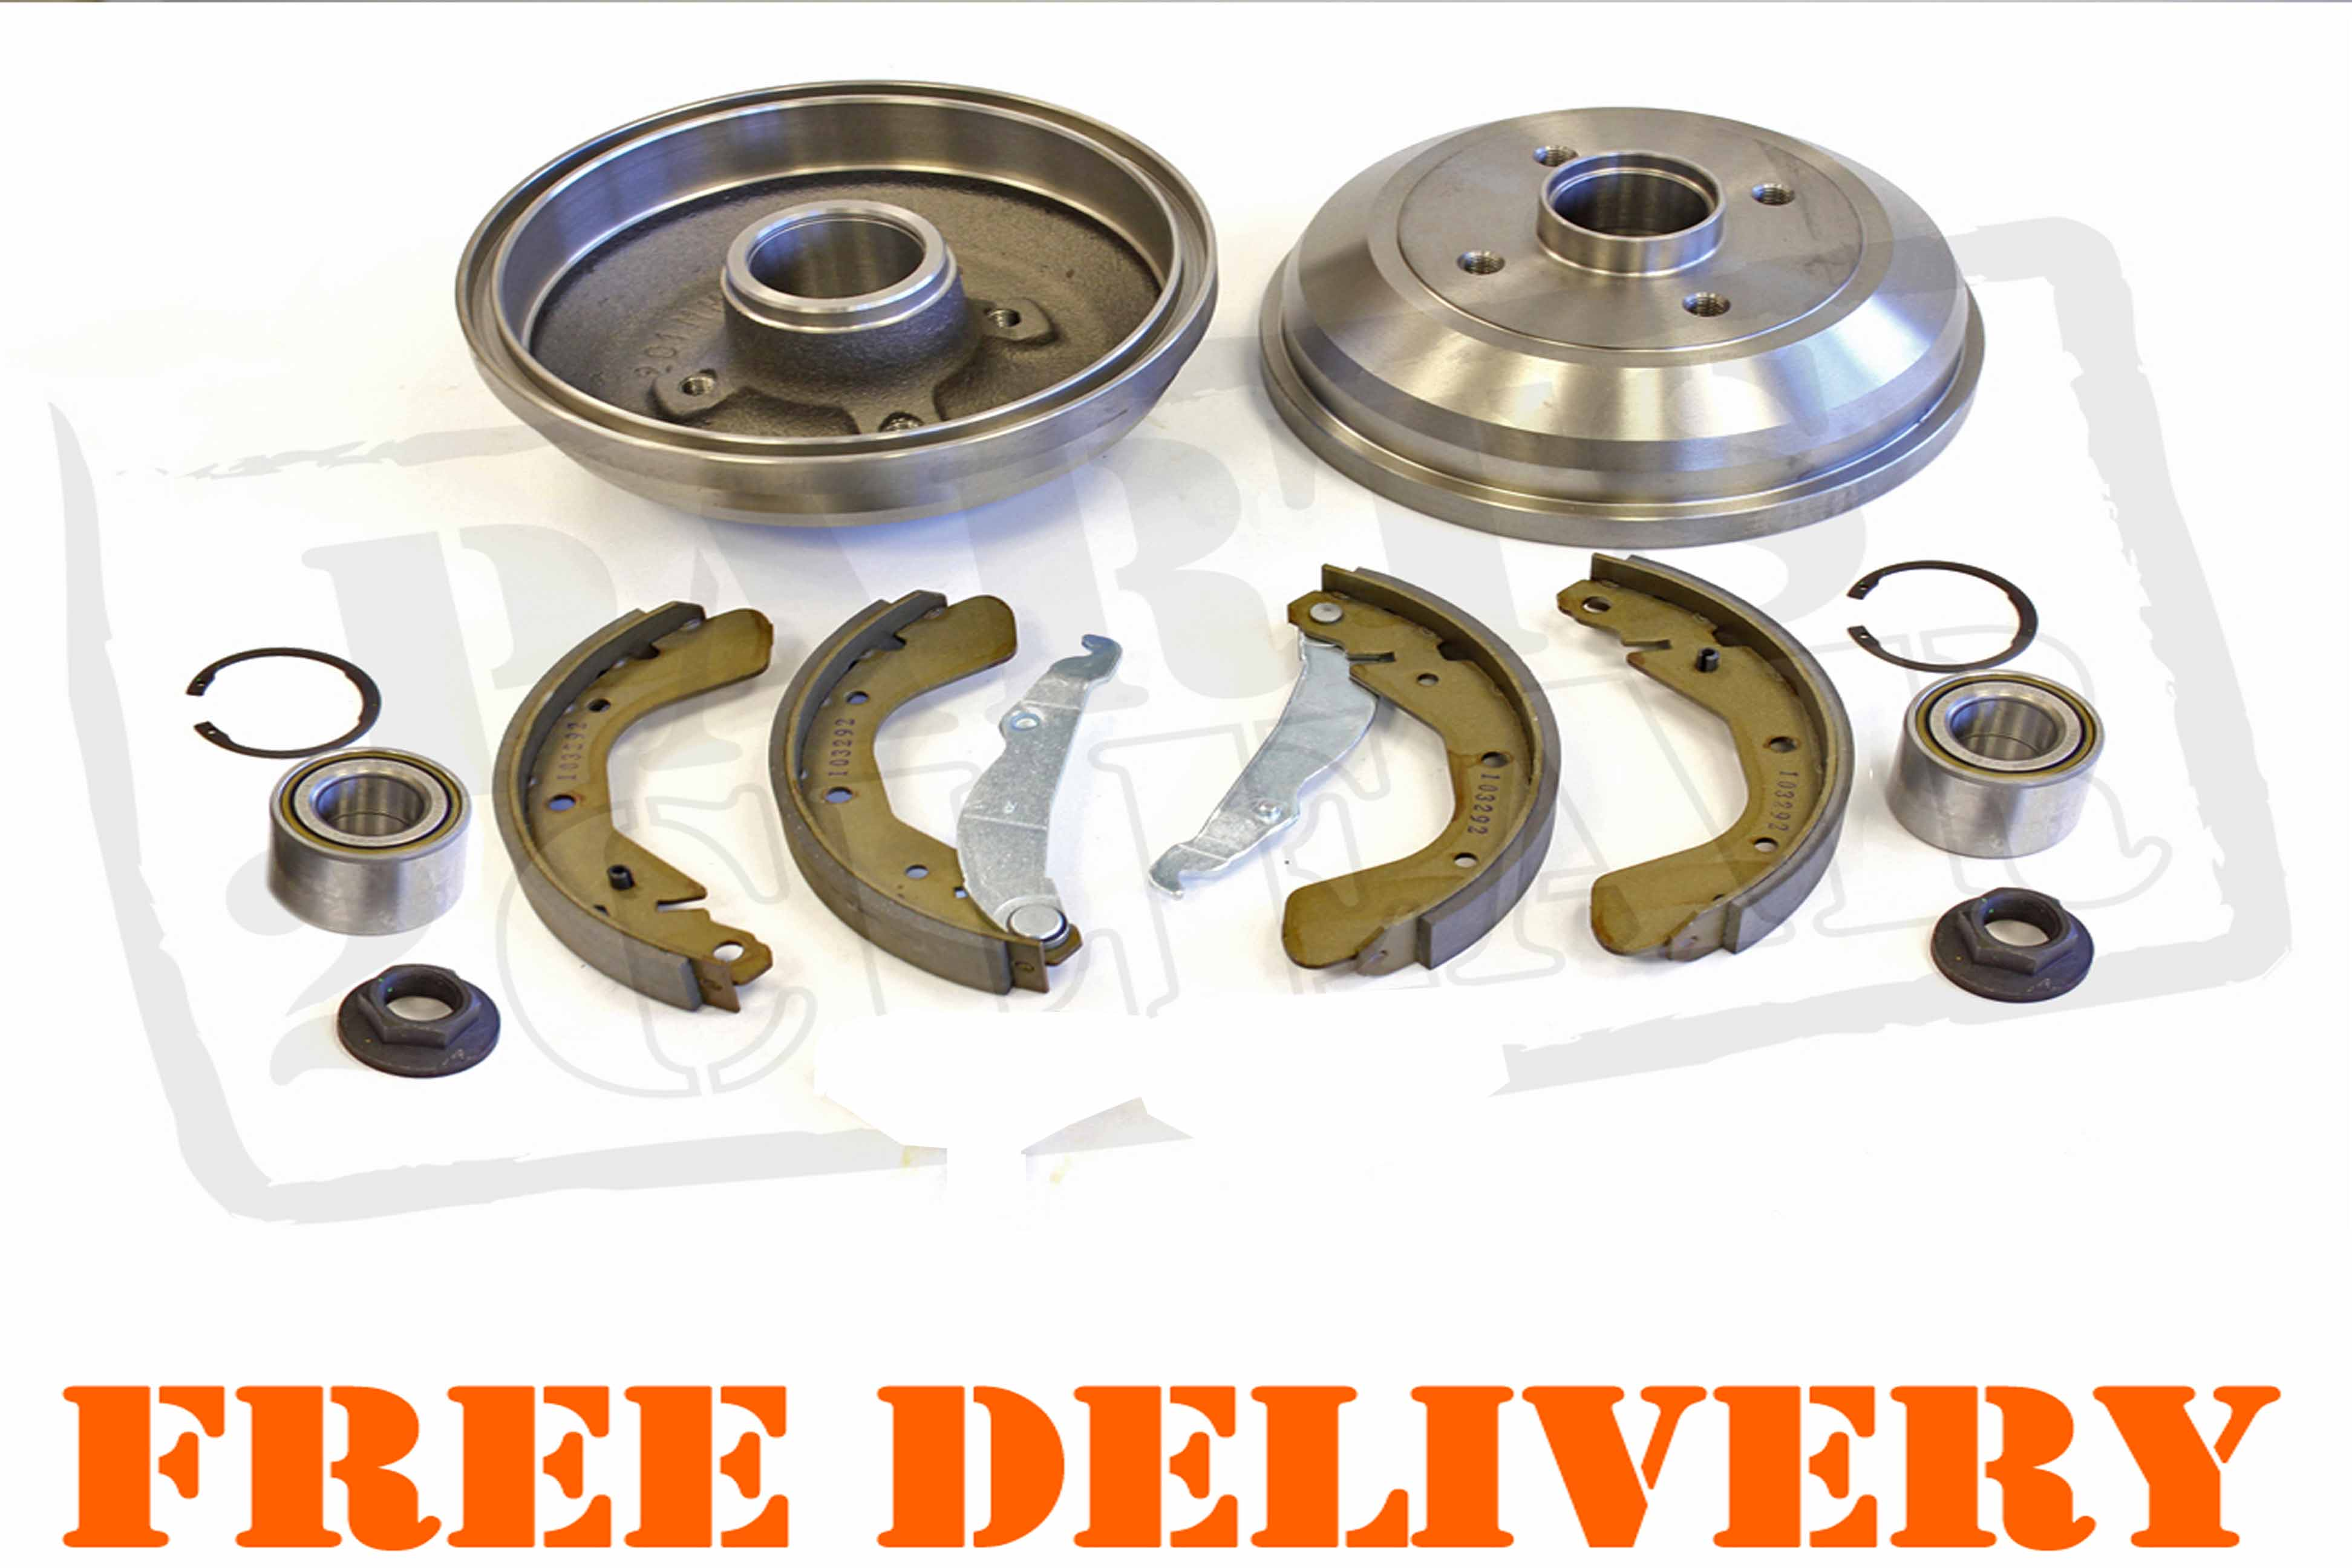 renault clio 1 2 1 4 1 6 2 0 1 5 dci rear brake drums. Black Bedroom Furniture Sets. Home Design Ideas